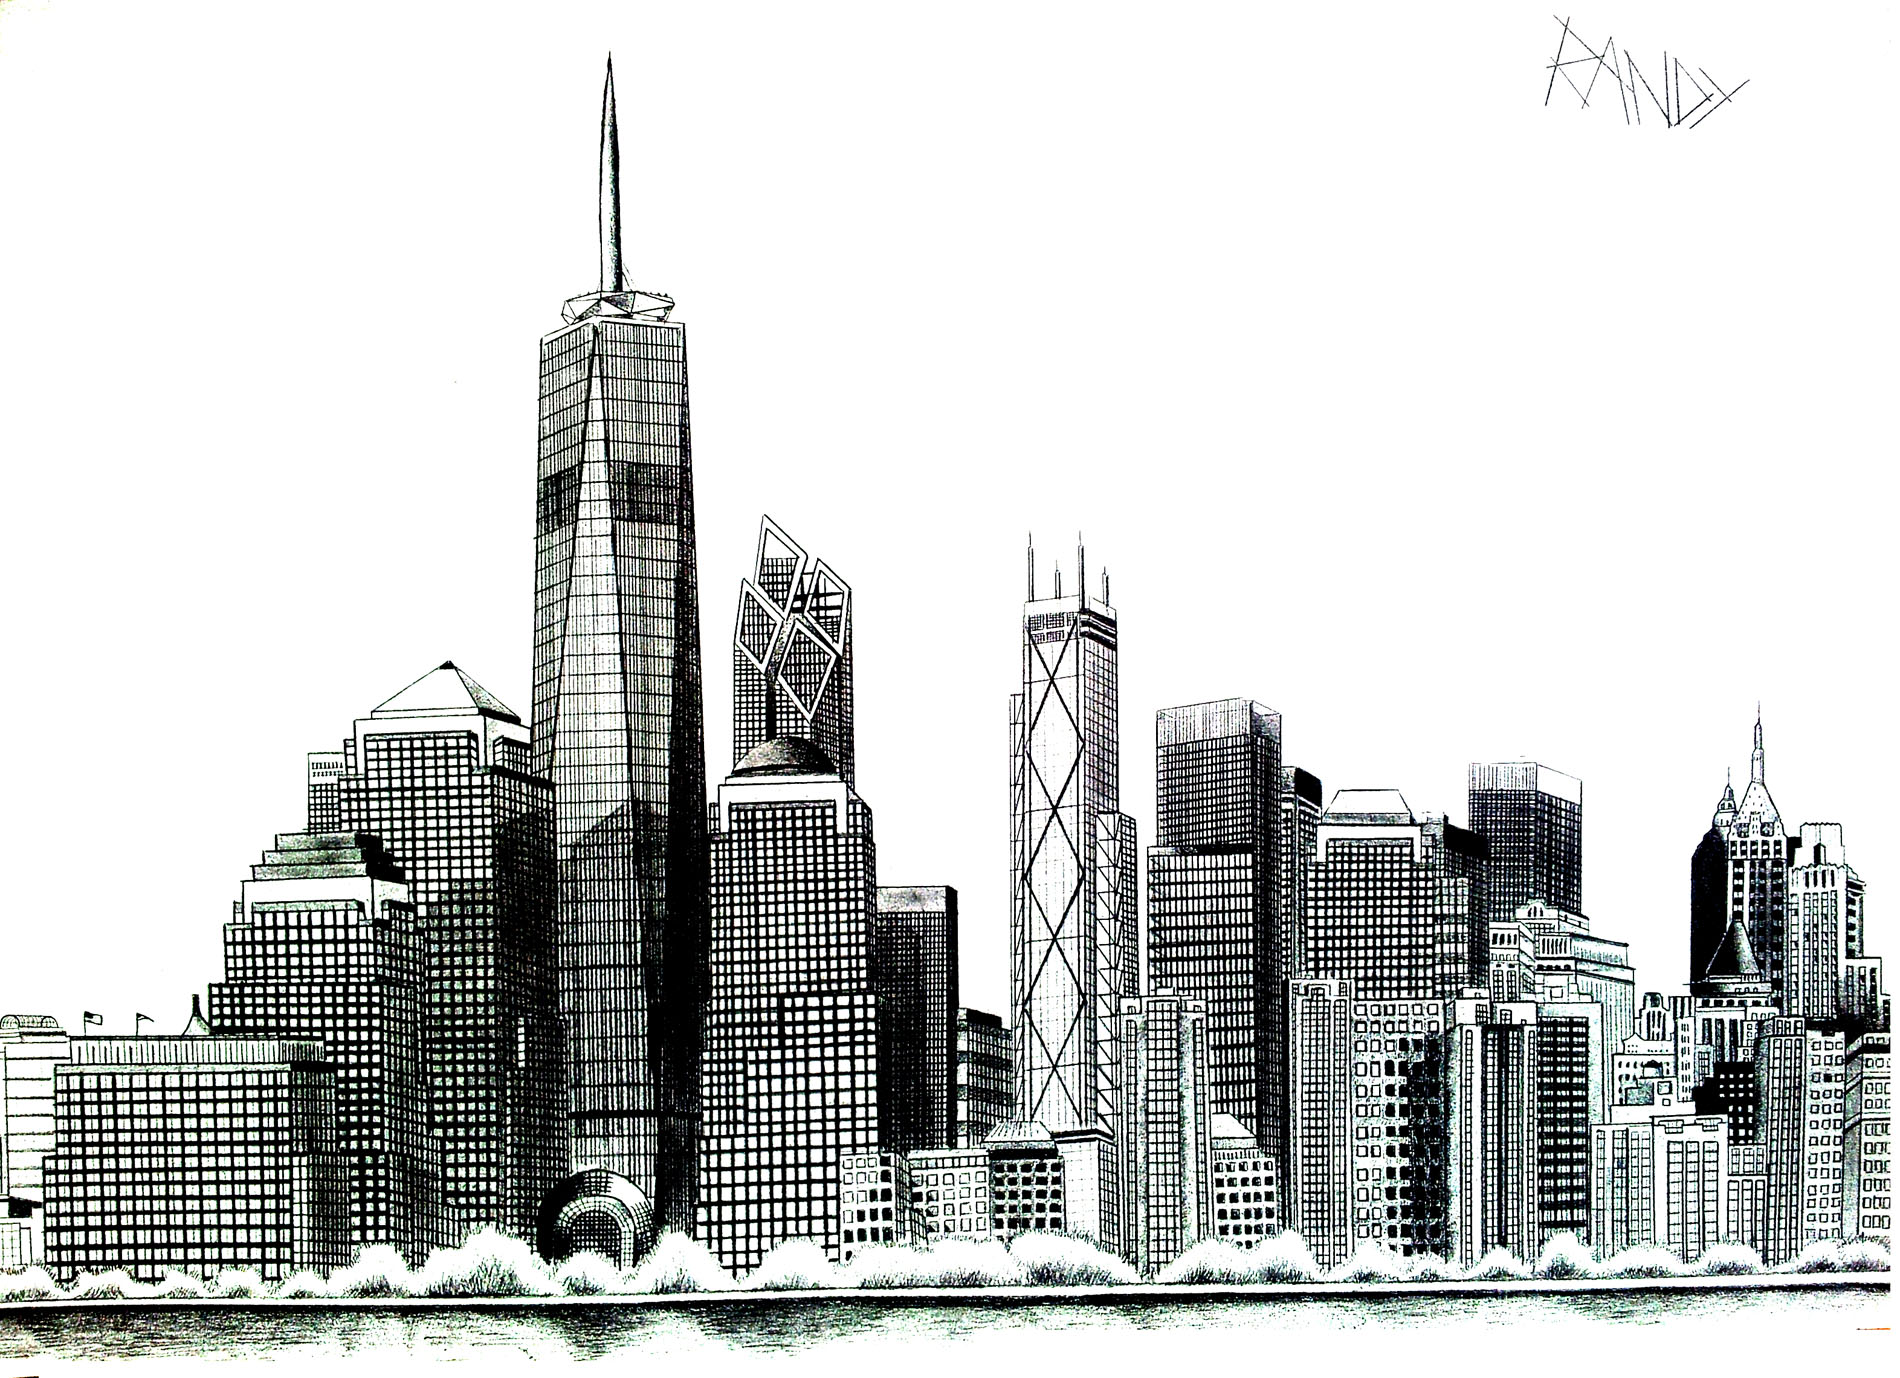 Drawing of the tip of Manhattan with Liberty Tower, New Tower built at the World Trade Center : A coloring page full of emotions